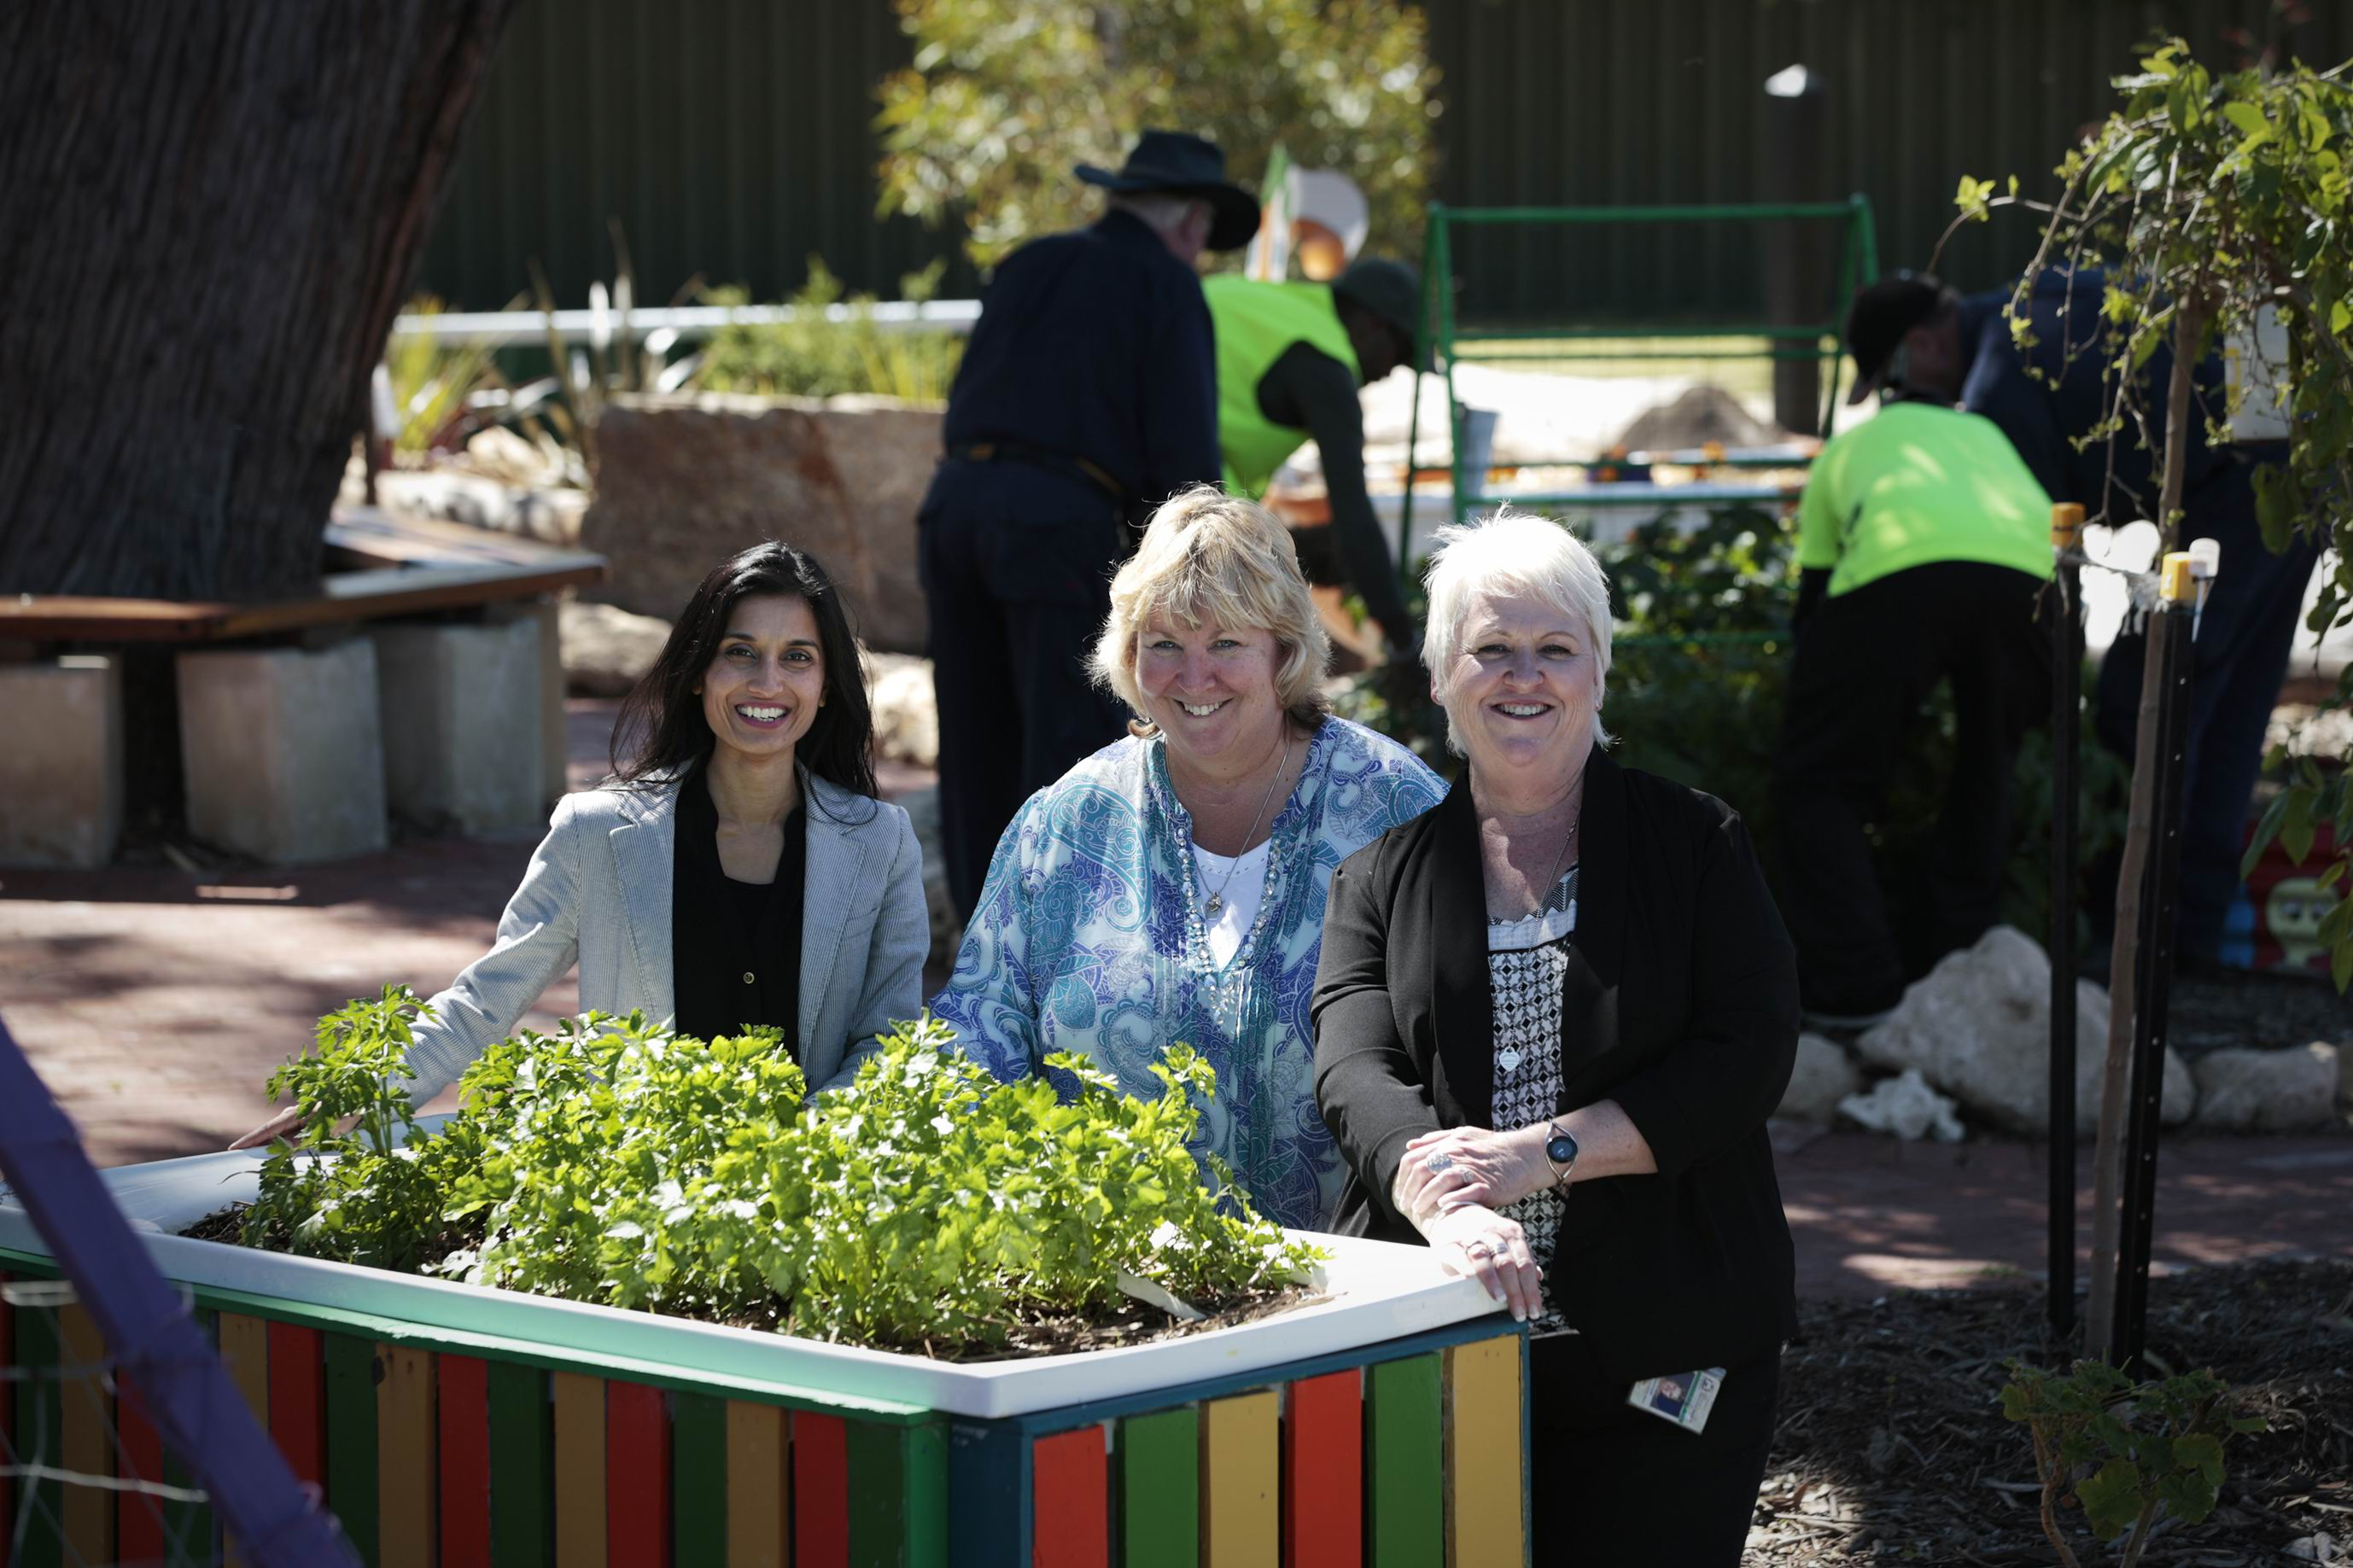 Monica Sharma (Manager Mirrabooka Adult Community Corrections), Donelle Wilson (Community Garden Coordinator) and Margaret Blackwell (Acting Community Corrections Offcier). Department of Corrective Services have a community service program at Hamersley Habitat Community Garden where detainees work at the garden.